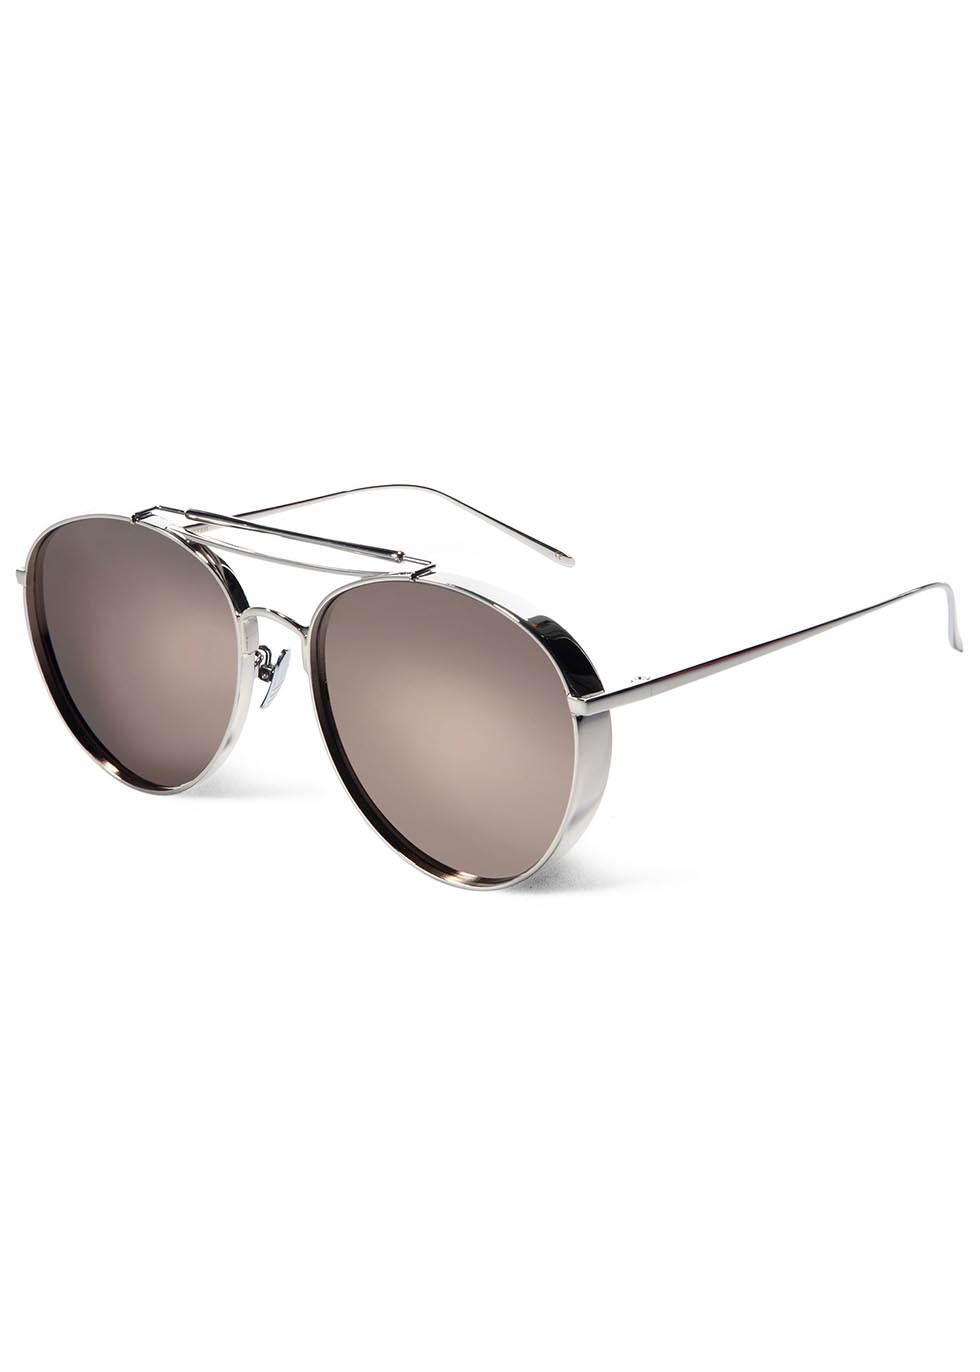 c31a9de758 Gentle Monster Big Bully Mirrored Aviator-style Sunglasses in ...